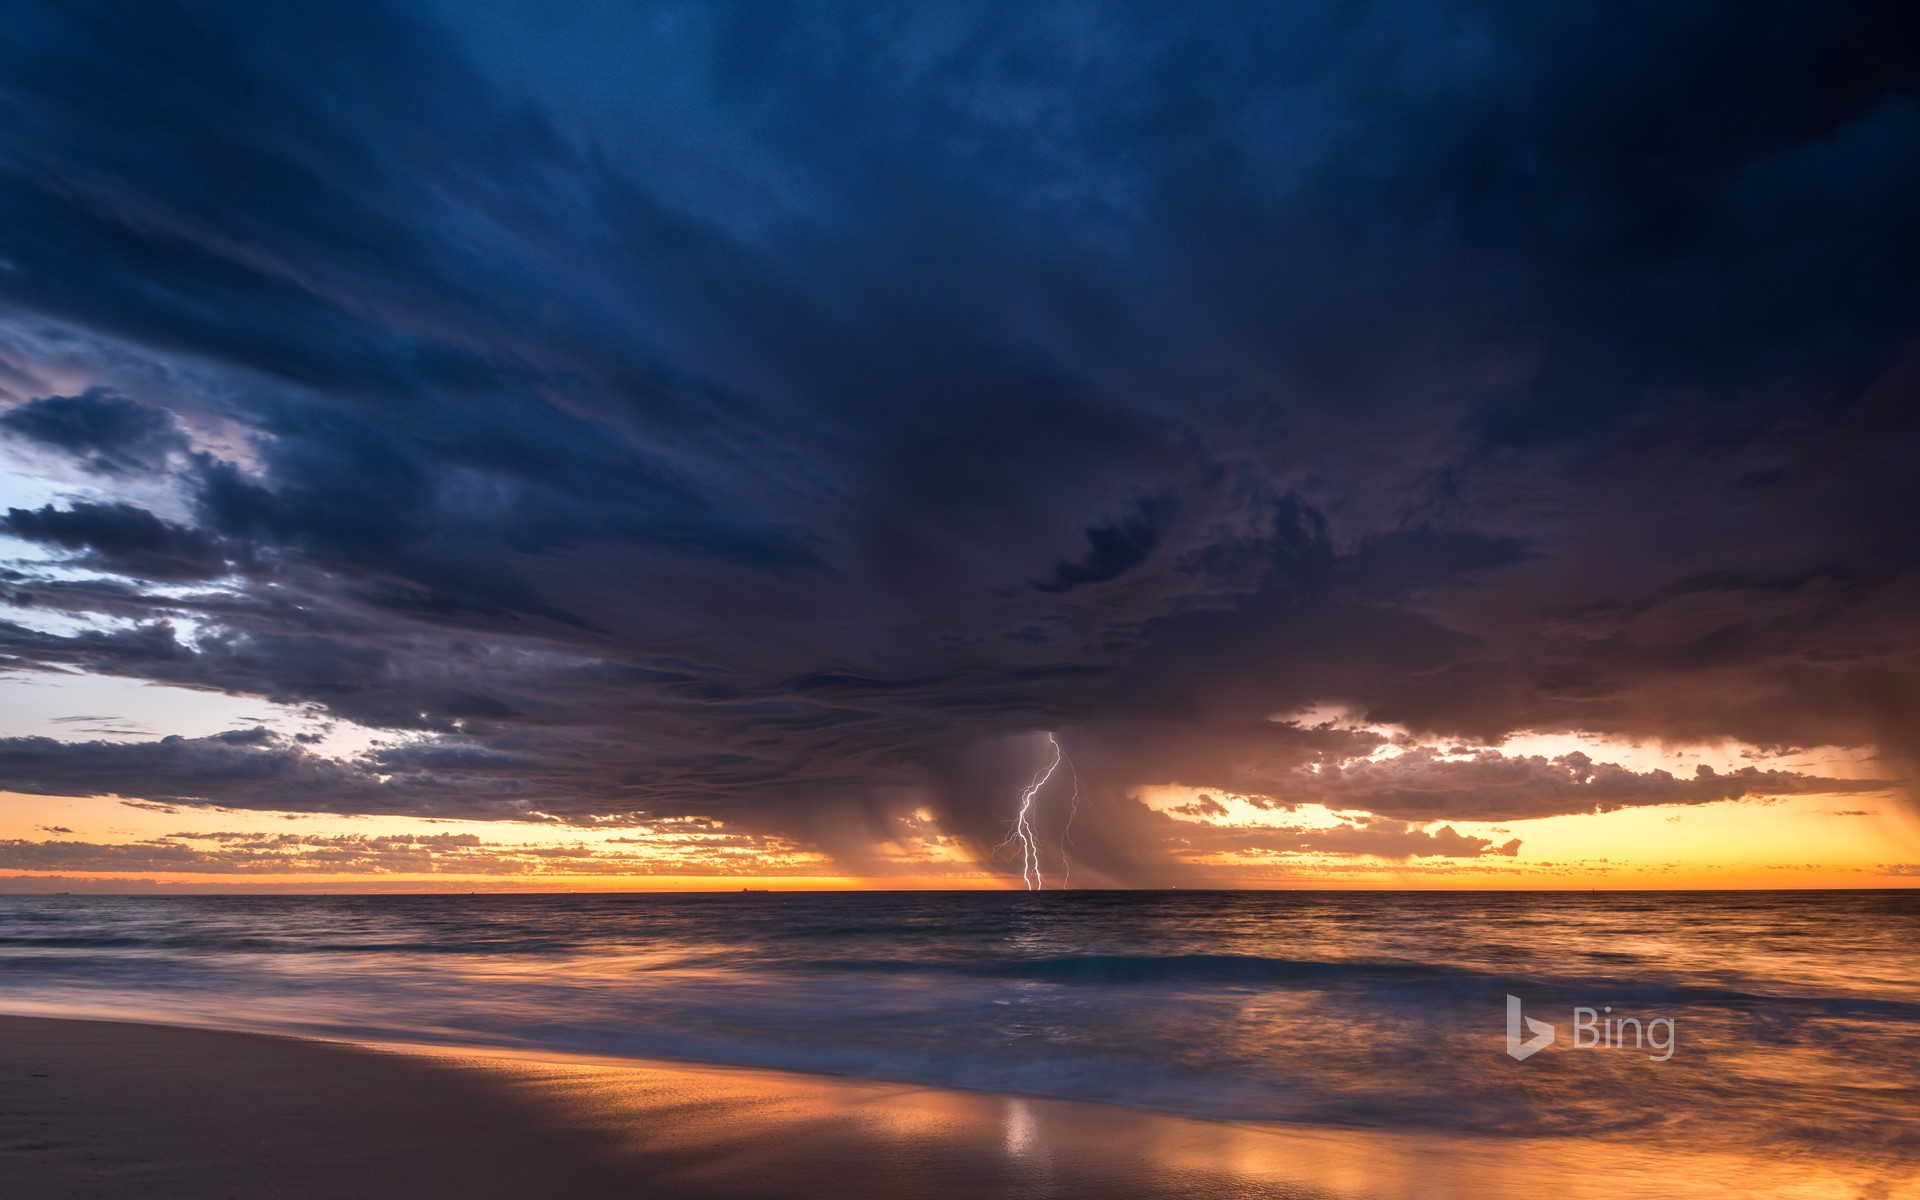 Summer storm from City Beach, Perth